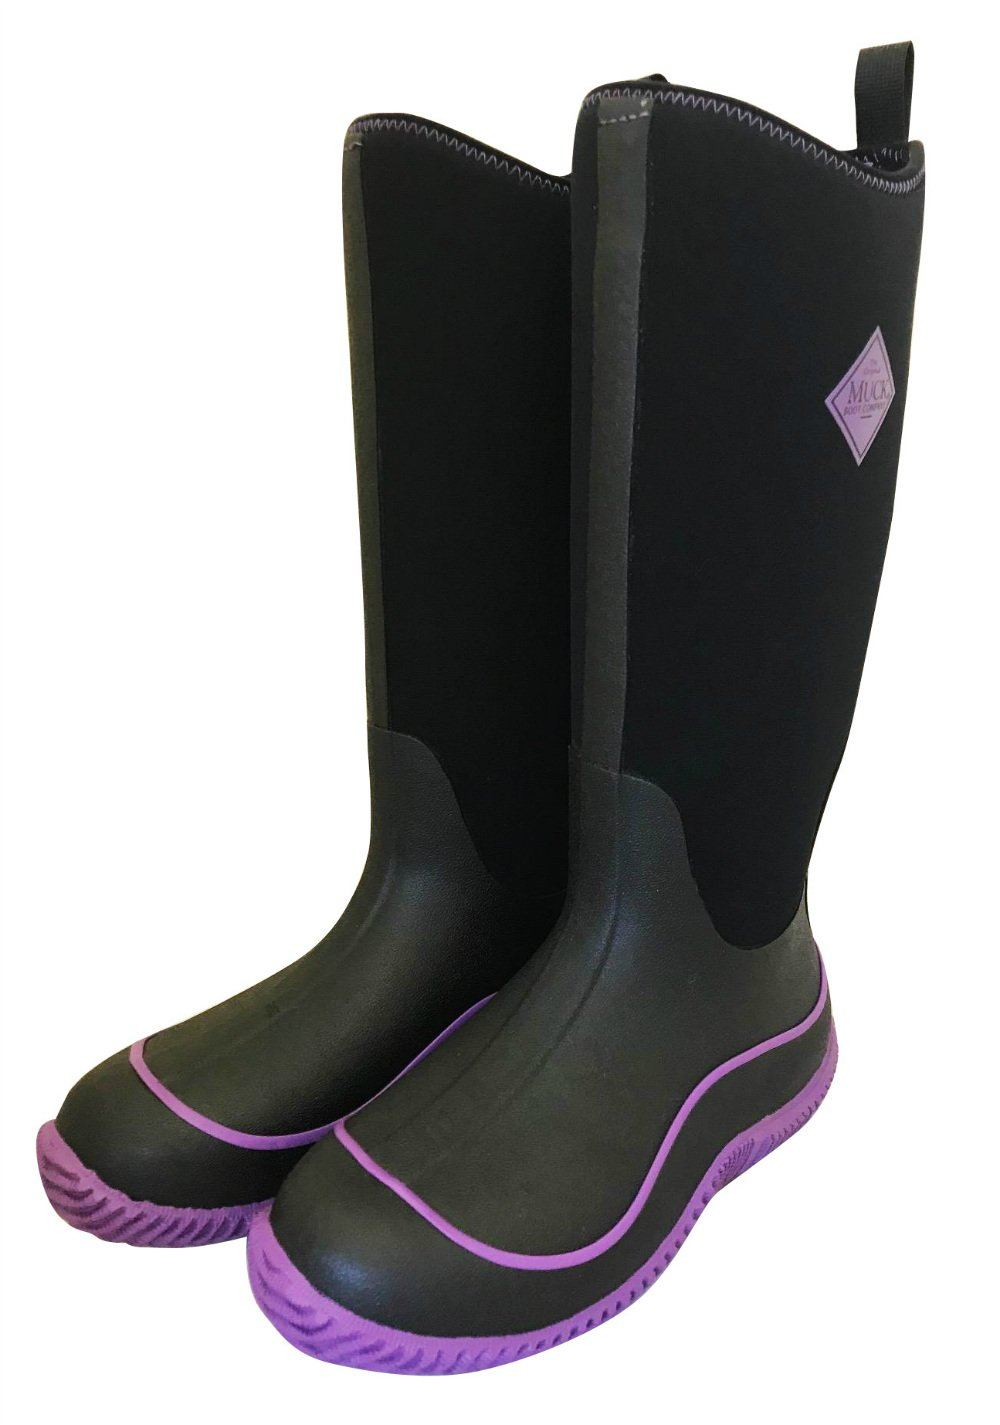 Black and Purple Neoprene Hale by Muck Boots - Wide Calf Wellies for Women